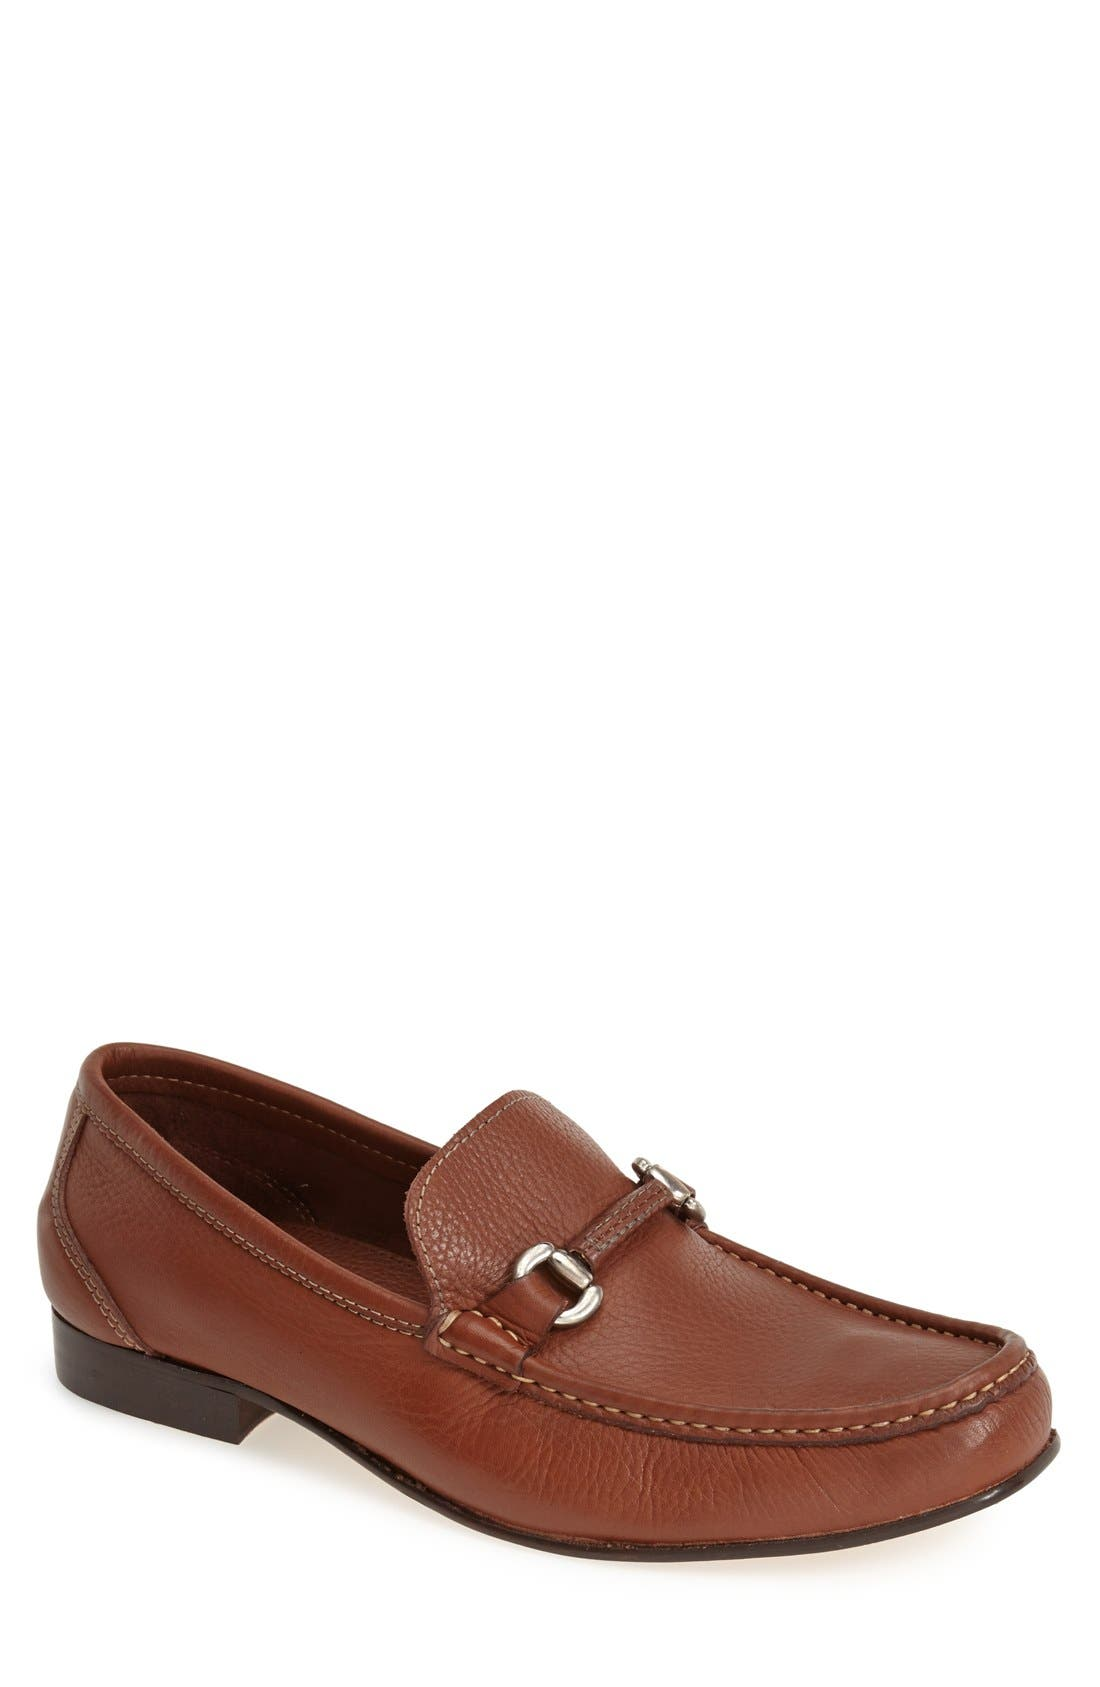 'San Remo' Leather Bit Loafer,                         Main,                         color, BROWN